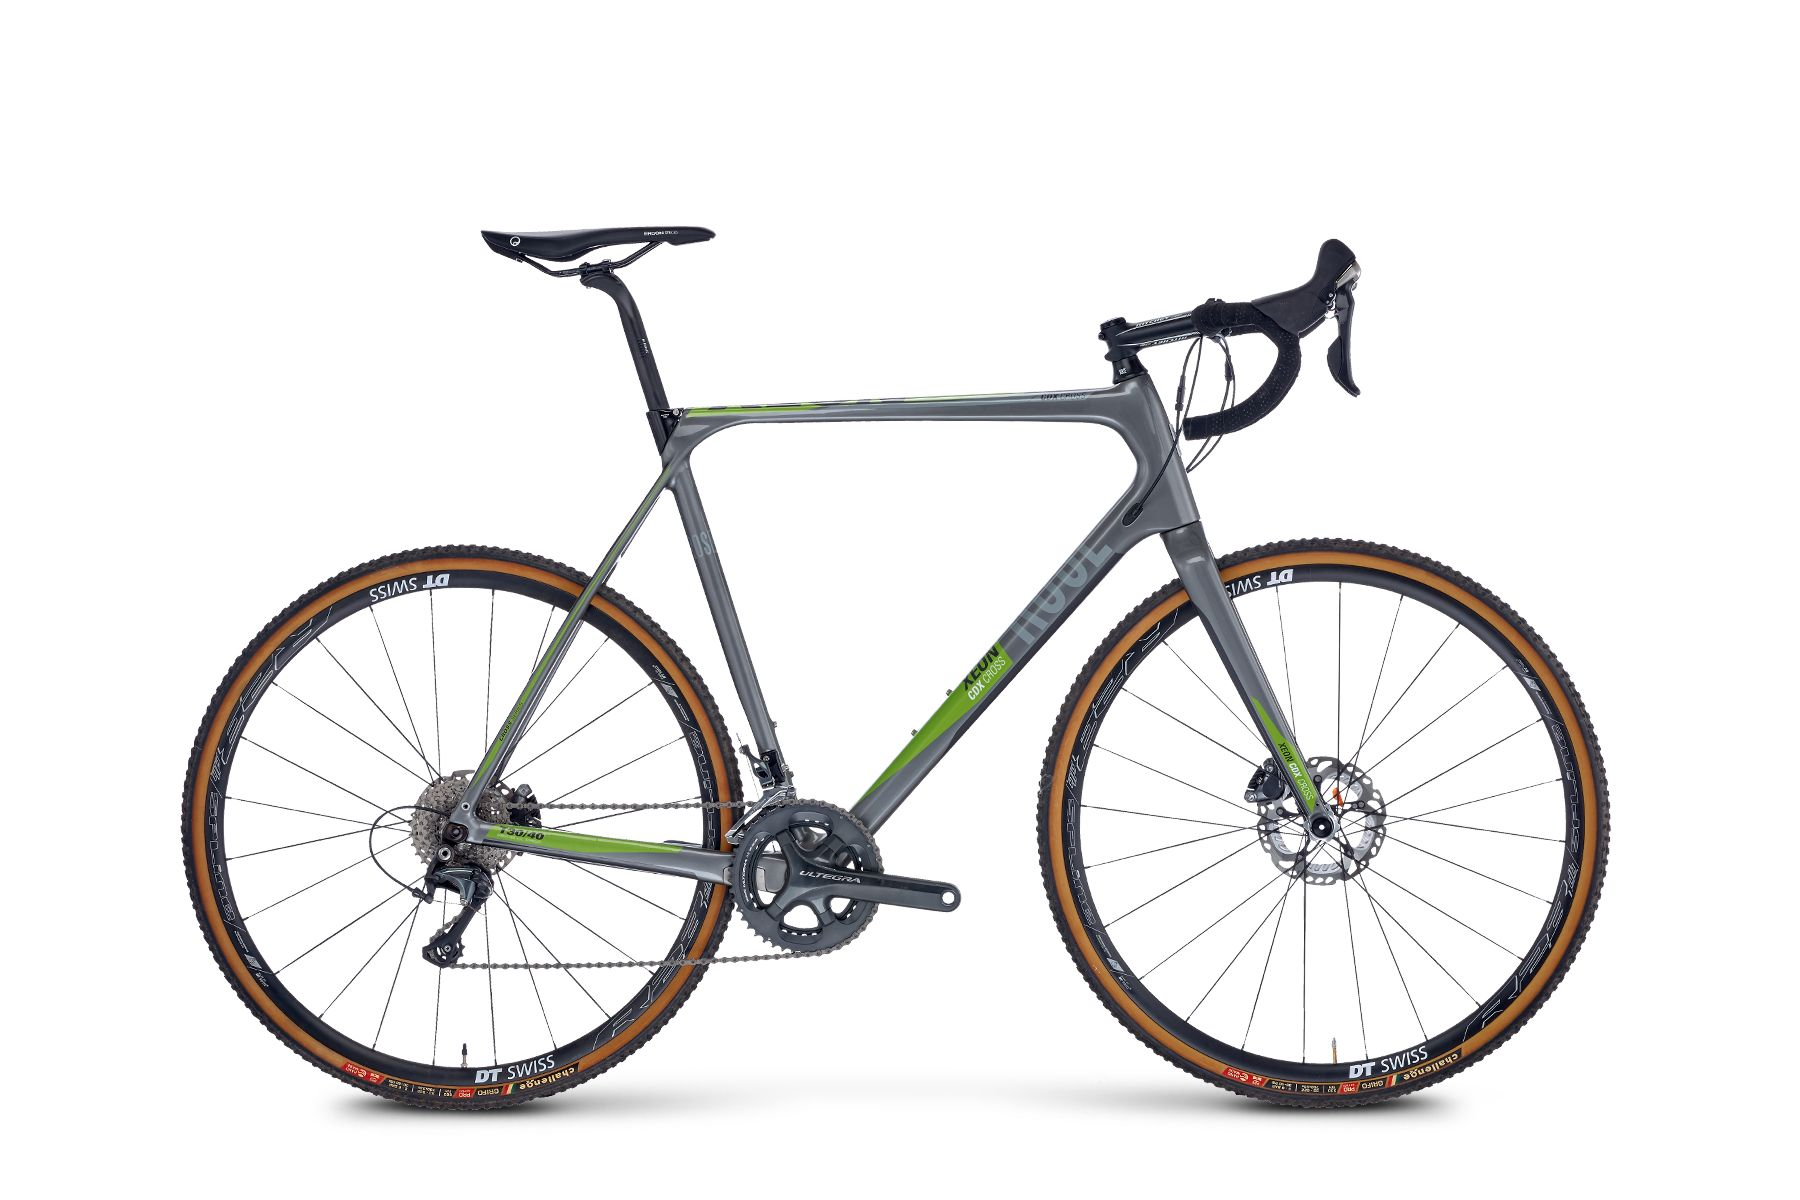 ROSE XEON CDX CROSS ULTEGRA Second-Hand Bike Size: 62cm | Cross-cykler